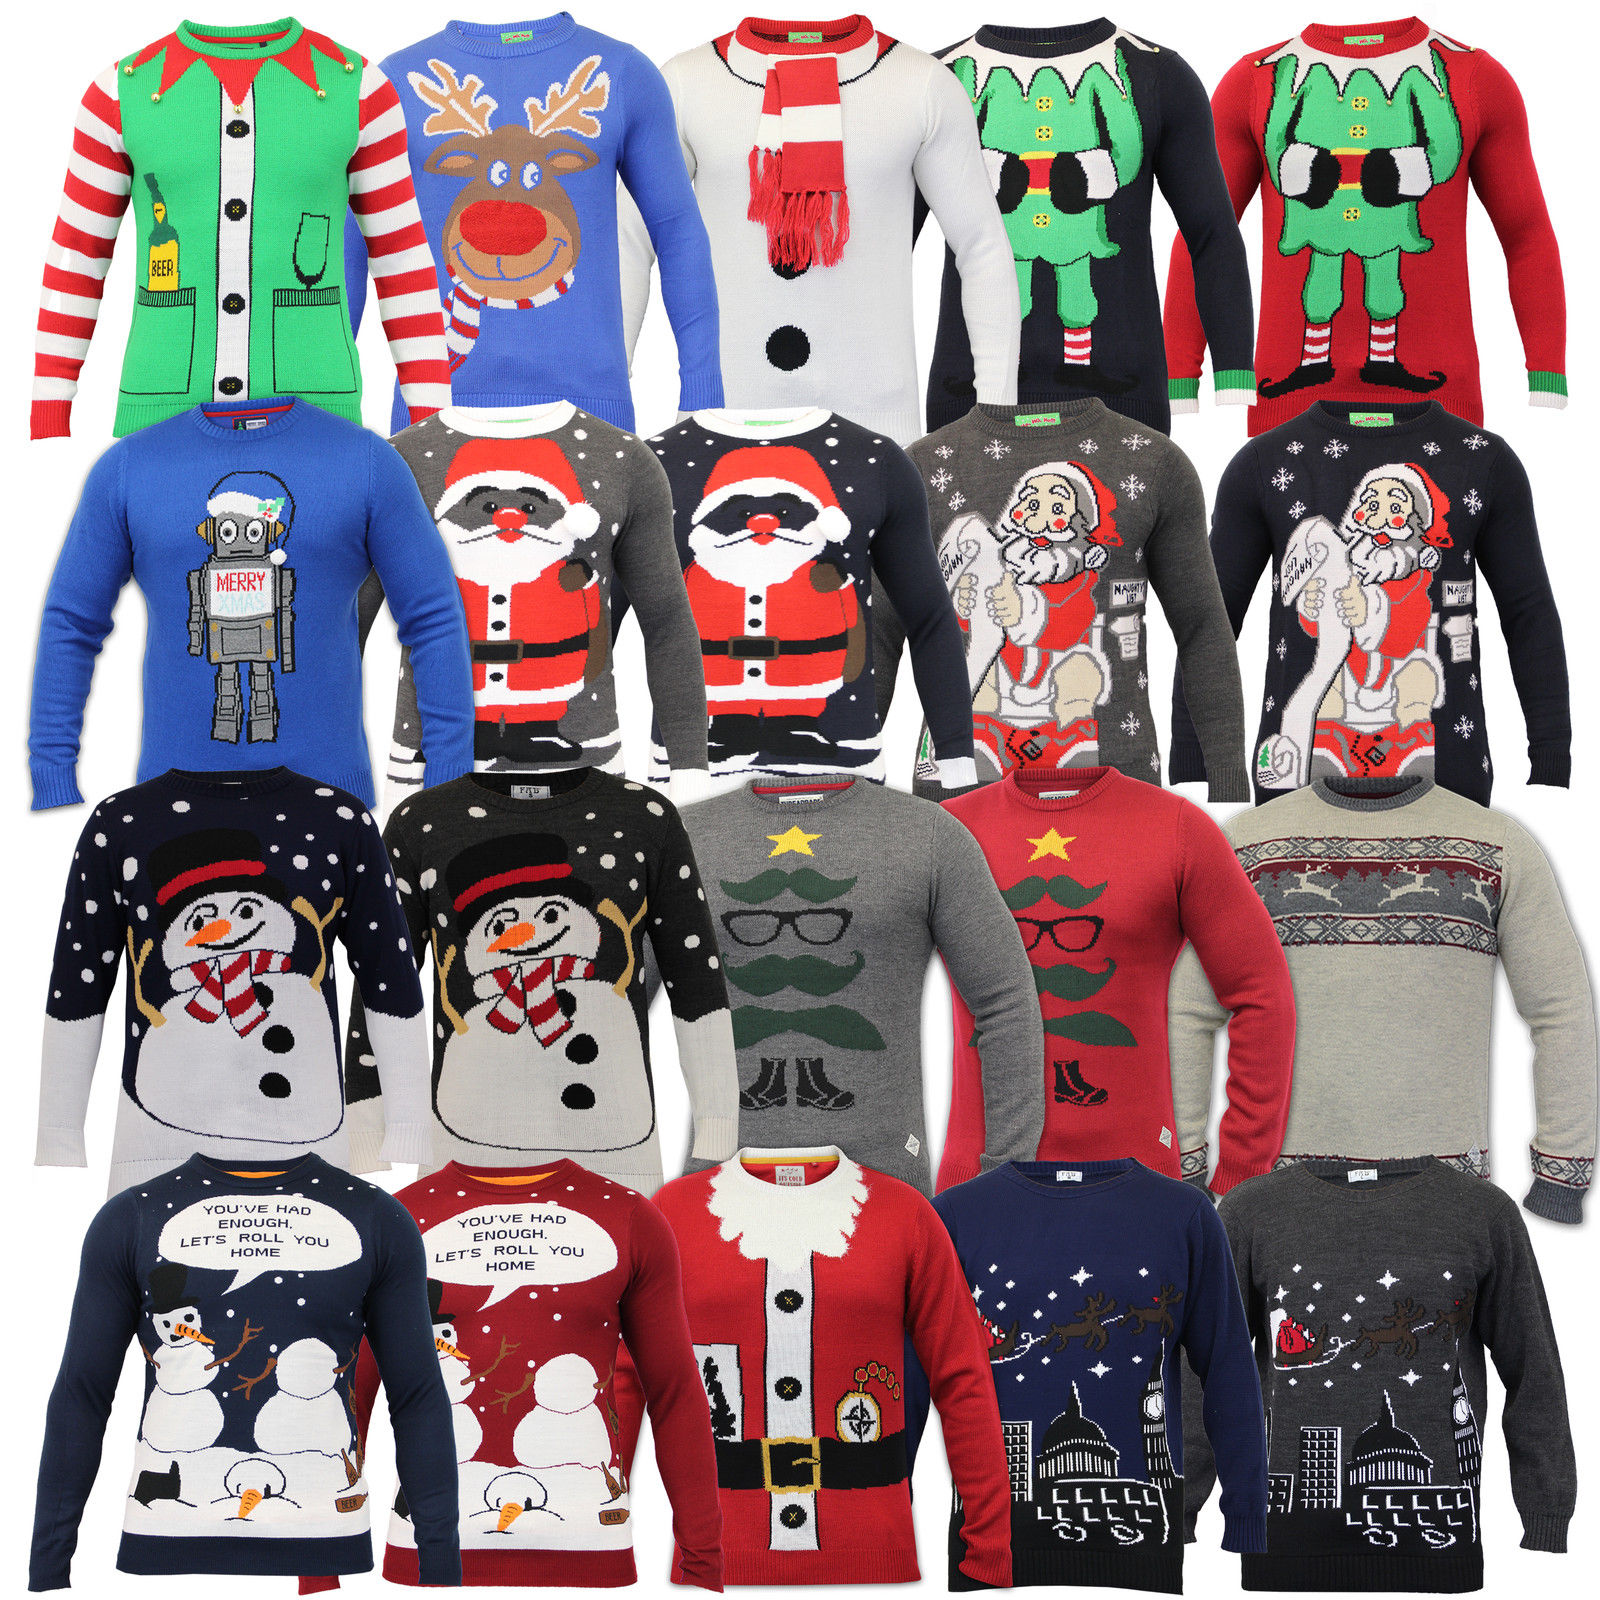 8ddc5f415 Buy Mens Christmas Jumper Threadbare Xmas Knitted Snowman Santa ...